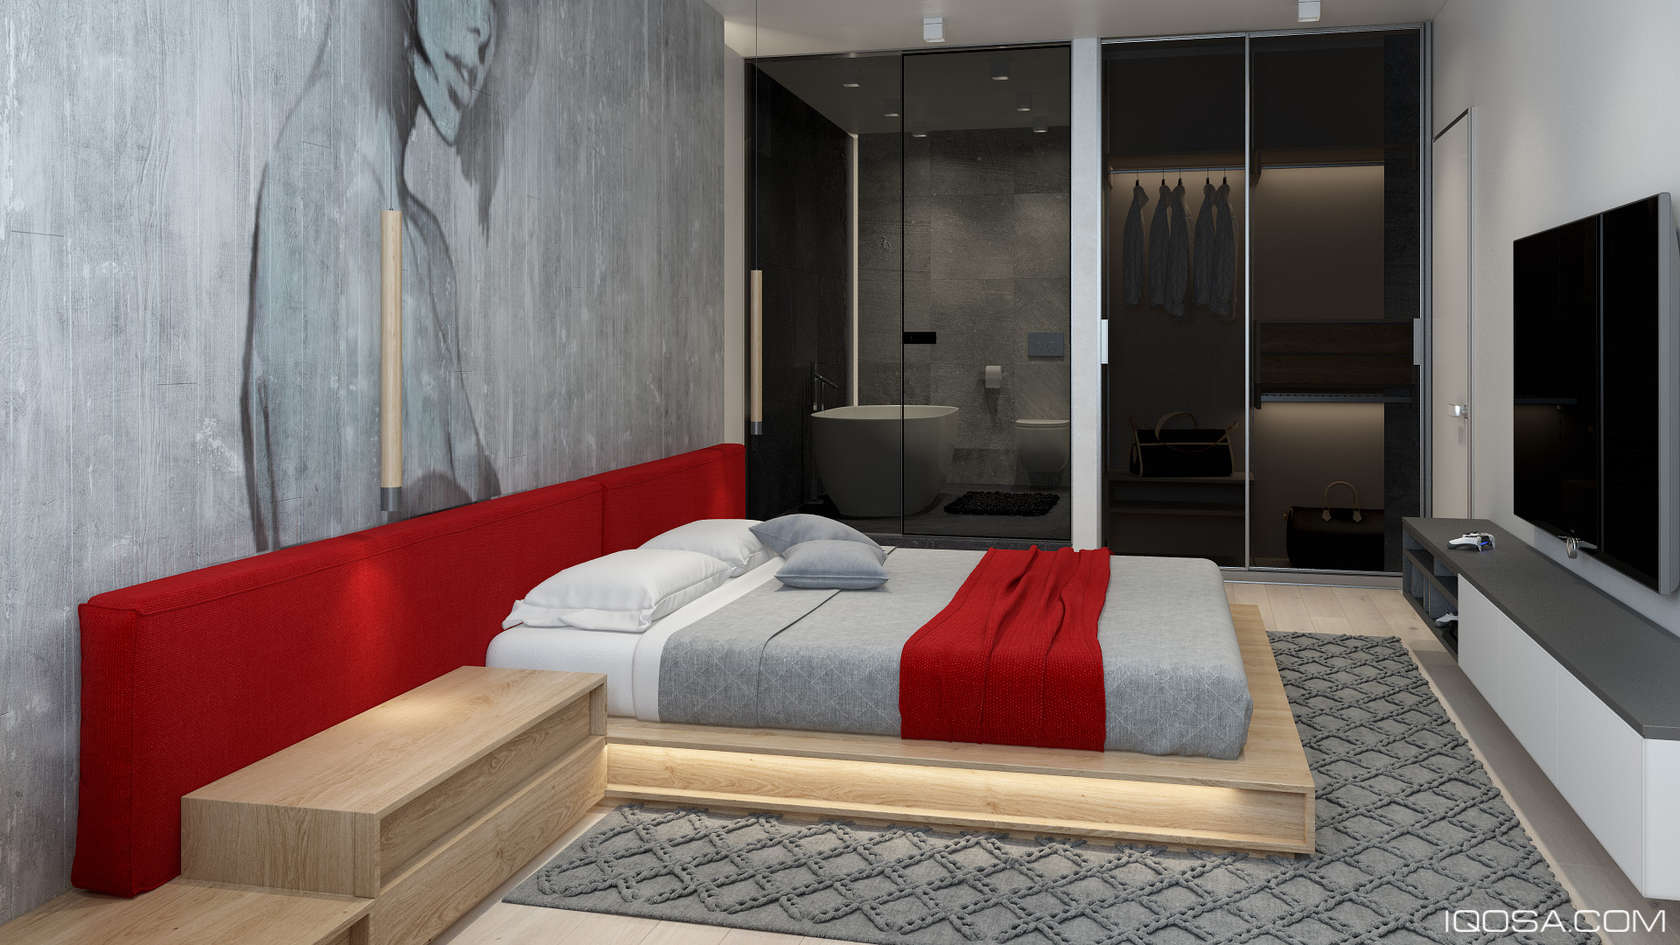 Bedroom Studio Ideas Luxury Small Studio Apartment Design Combined Modern And